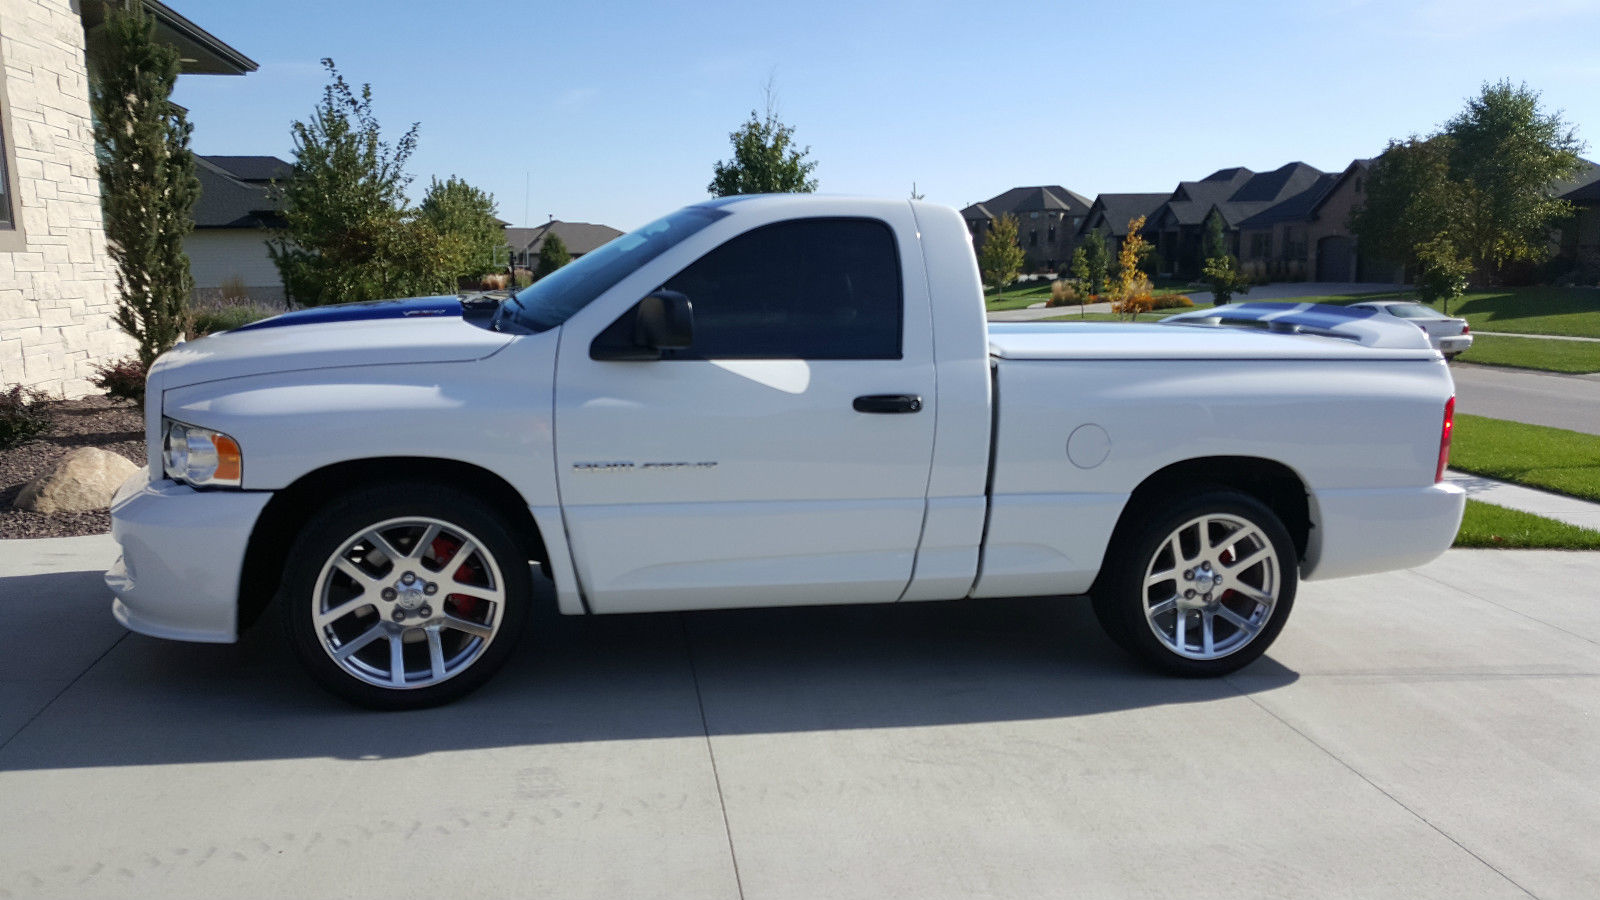 2005 dodge ram srt10 viper engine limited edition for sale. Cars Review. Best American Auto & Cars Review